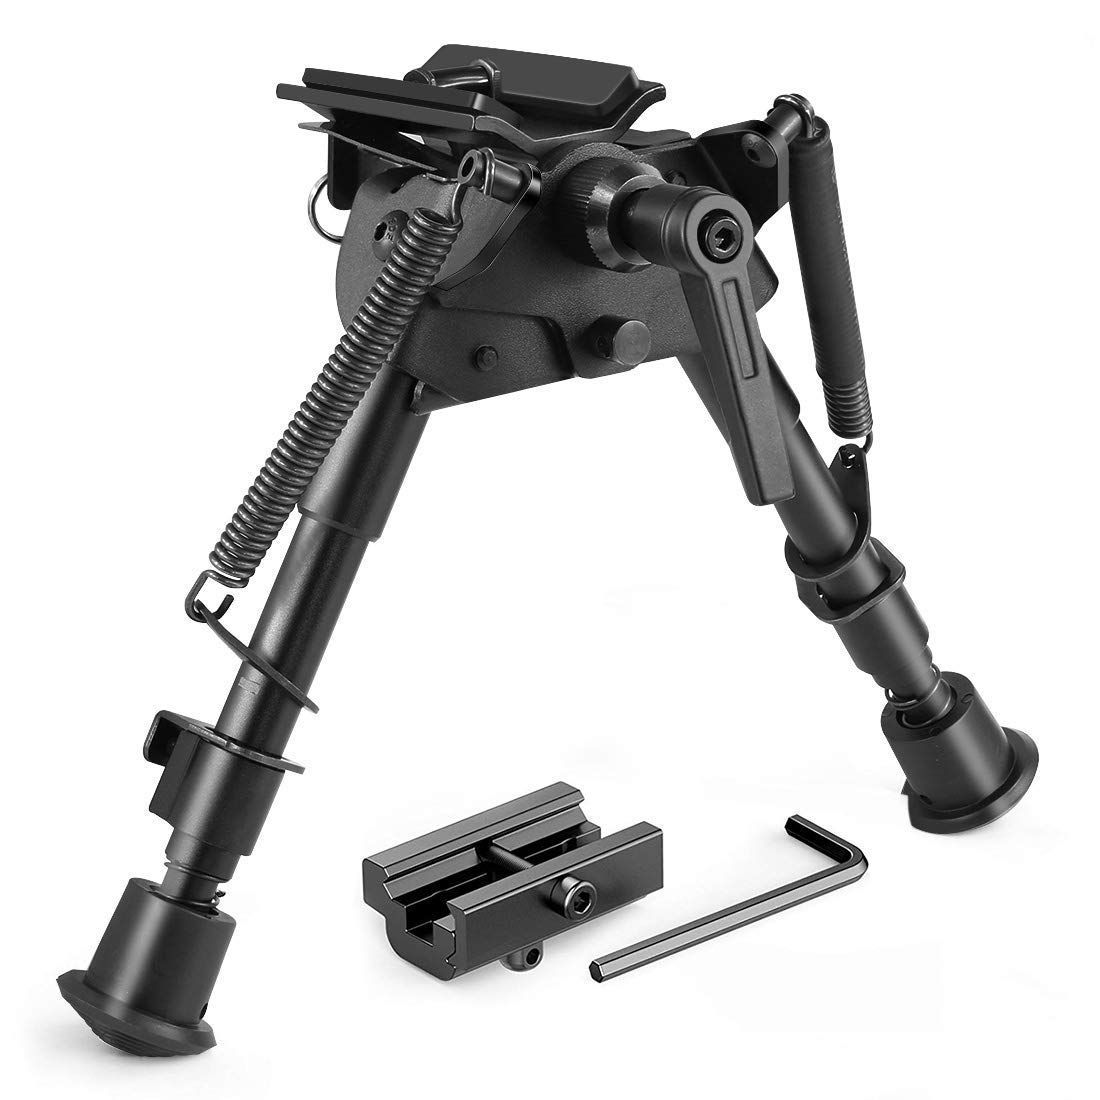 Twod Rifle Bipod 6-9 Inch Adjustable Spring Return Picatinny & Swivel-Stud Sniper Hunting Bipod with Mount Adapter by Twod